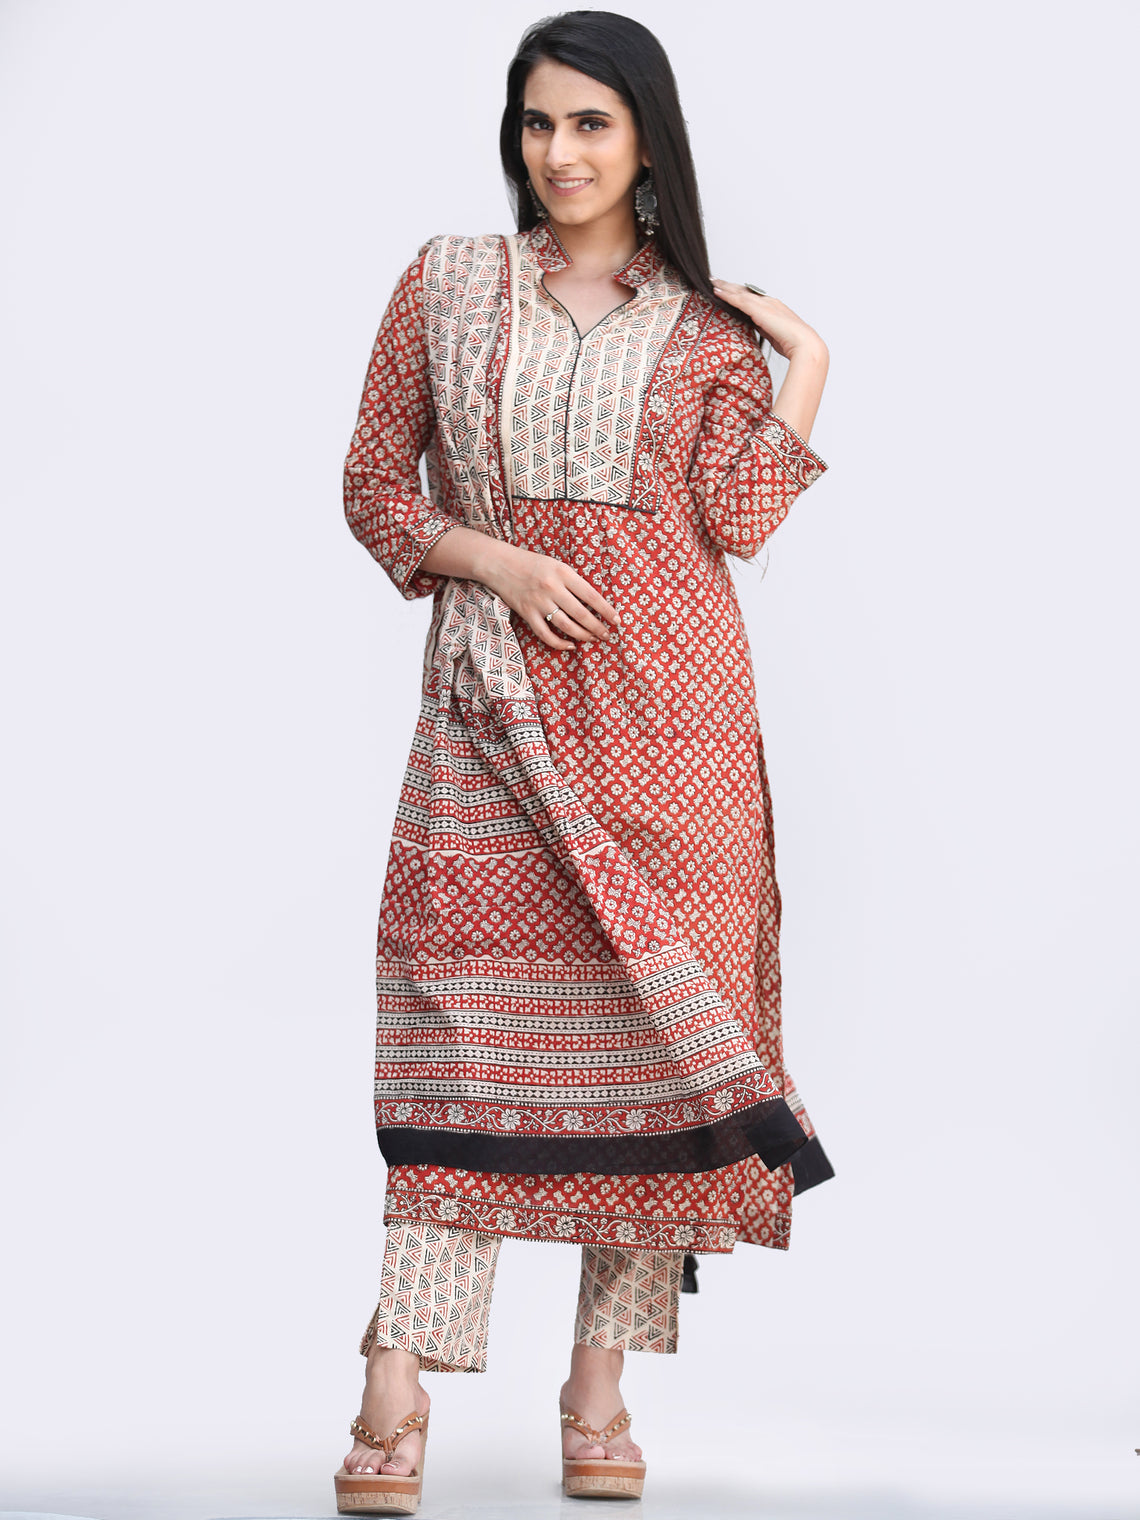 Bahaar Jumaina - Set of Kurta Pants & Dupatta - KS145A2442D